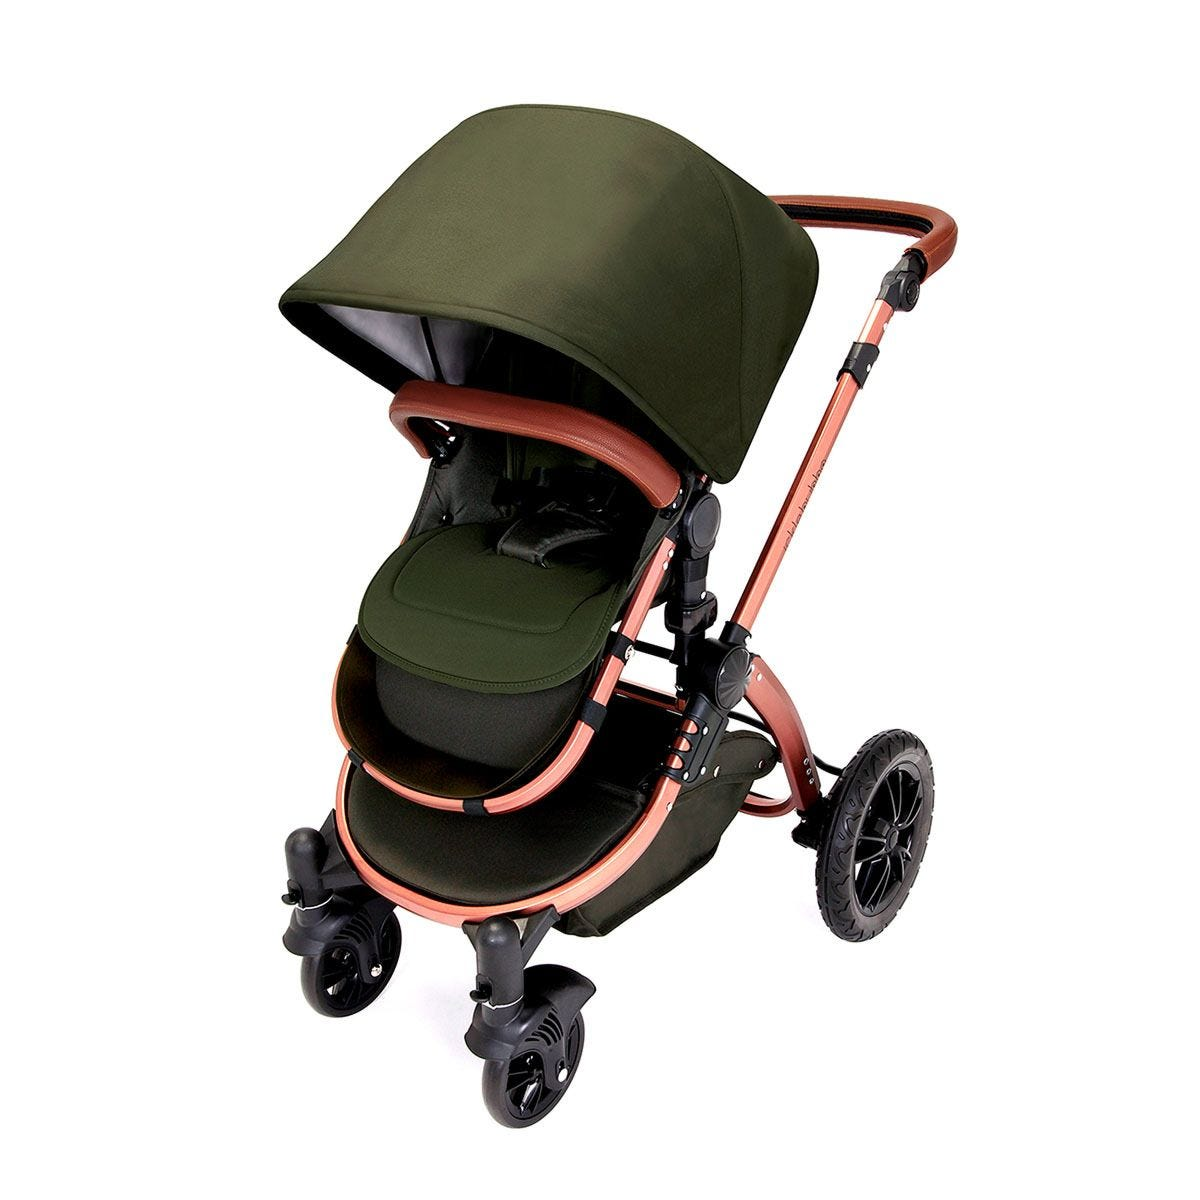 Ickle Bubba Stomp V4 All in One Travel System with Isofix Base - Woodland on Bronze with Tan Handles